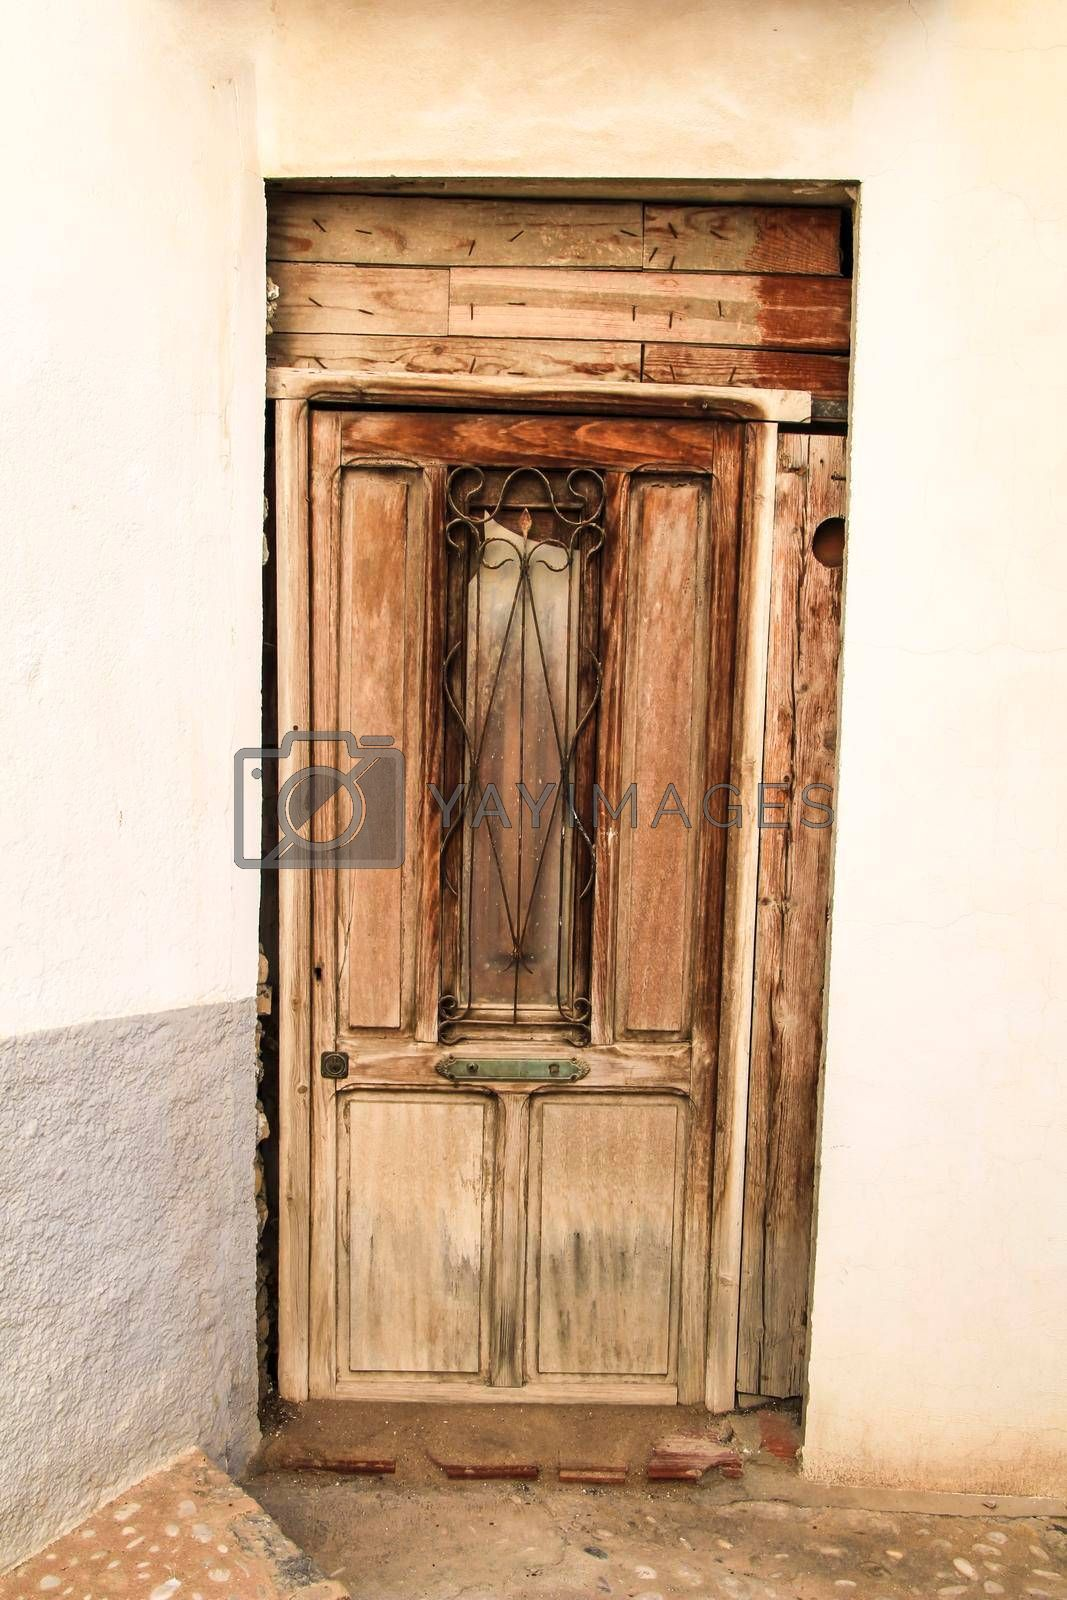 Whitewashed facade with old wooden door with iron details in Altea village, Alicante, Spain